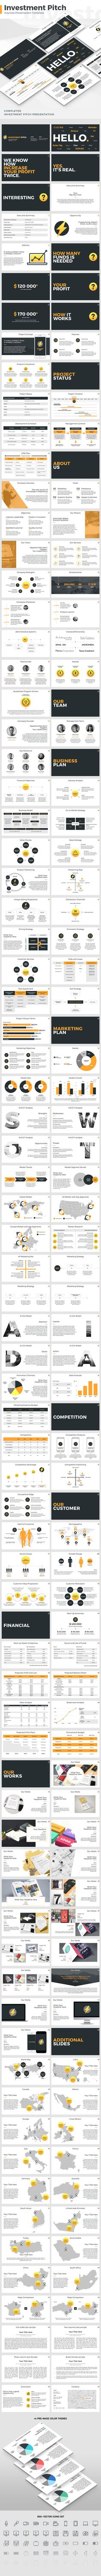 Investment Pitch - Keynote Template - Business #Keynote #Templates Download here: https://graphicriver.net/item/investment-pitch-keynote-template/19491785?ref=alena994